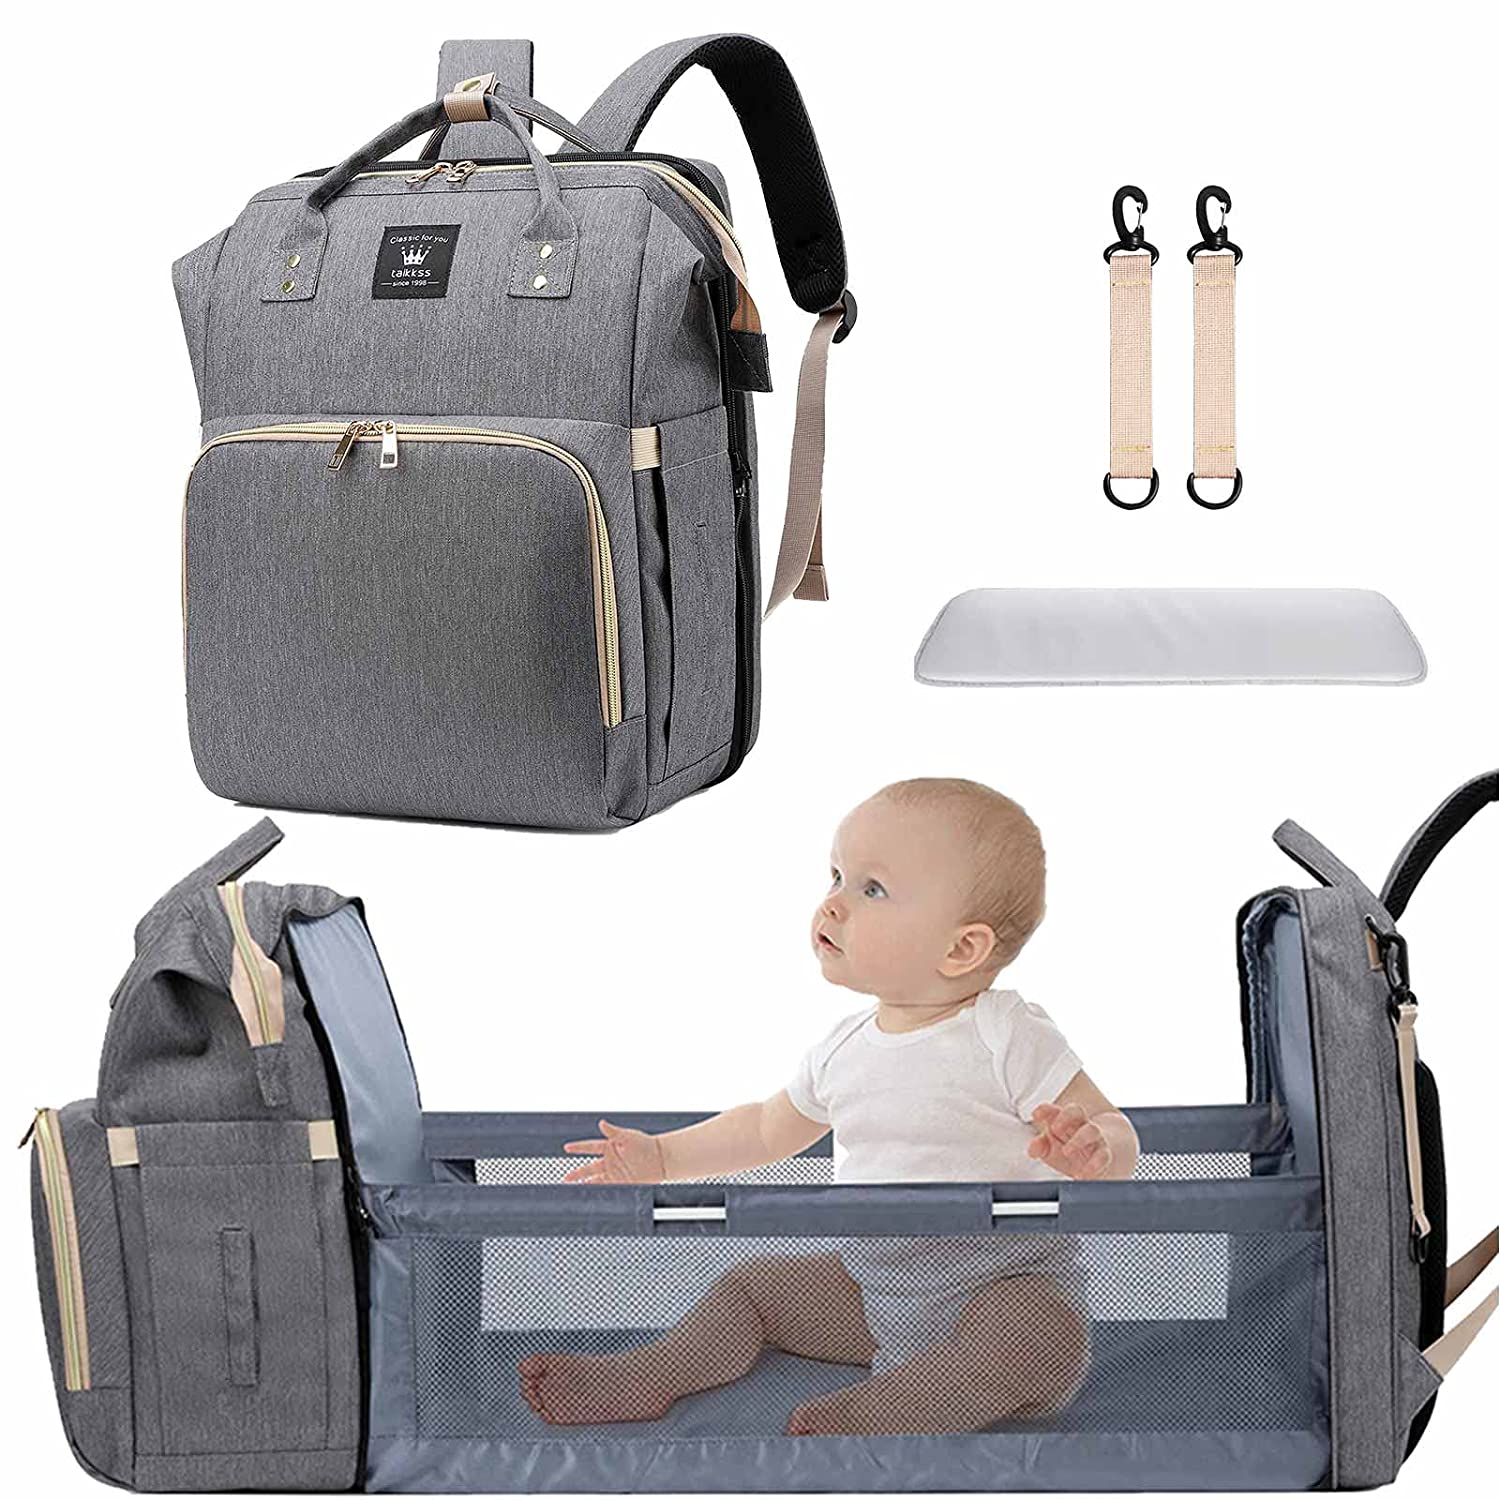 Diaper Bag Backpack with Baby Changing Station, 3 in 1 Multifunction Mommy Bag, Large Capacity/Multi-pocket/Waterproof/Gray